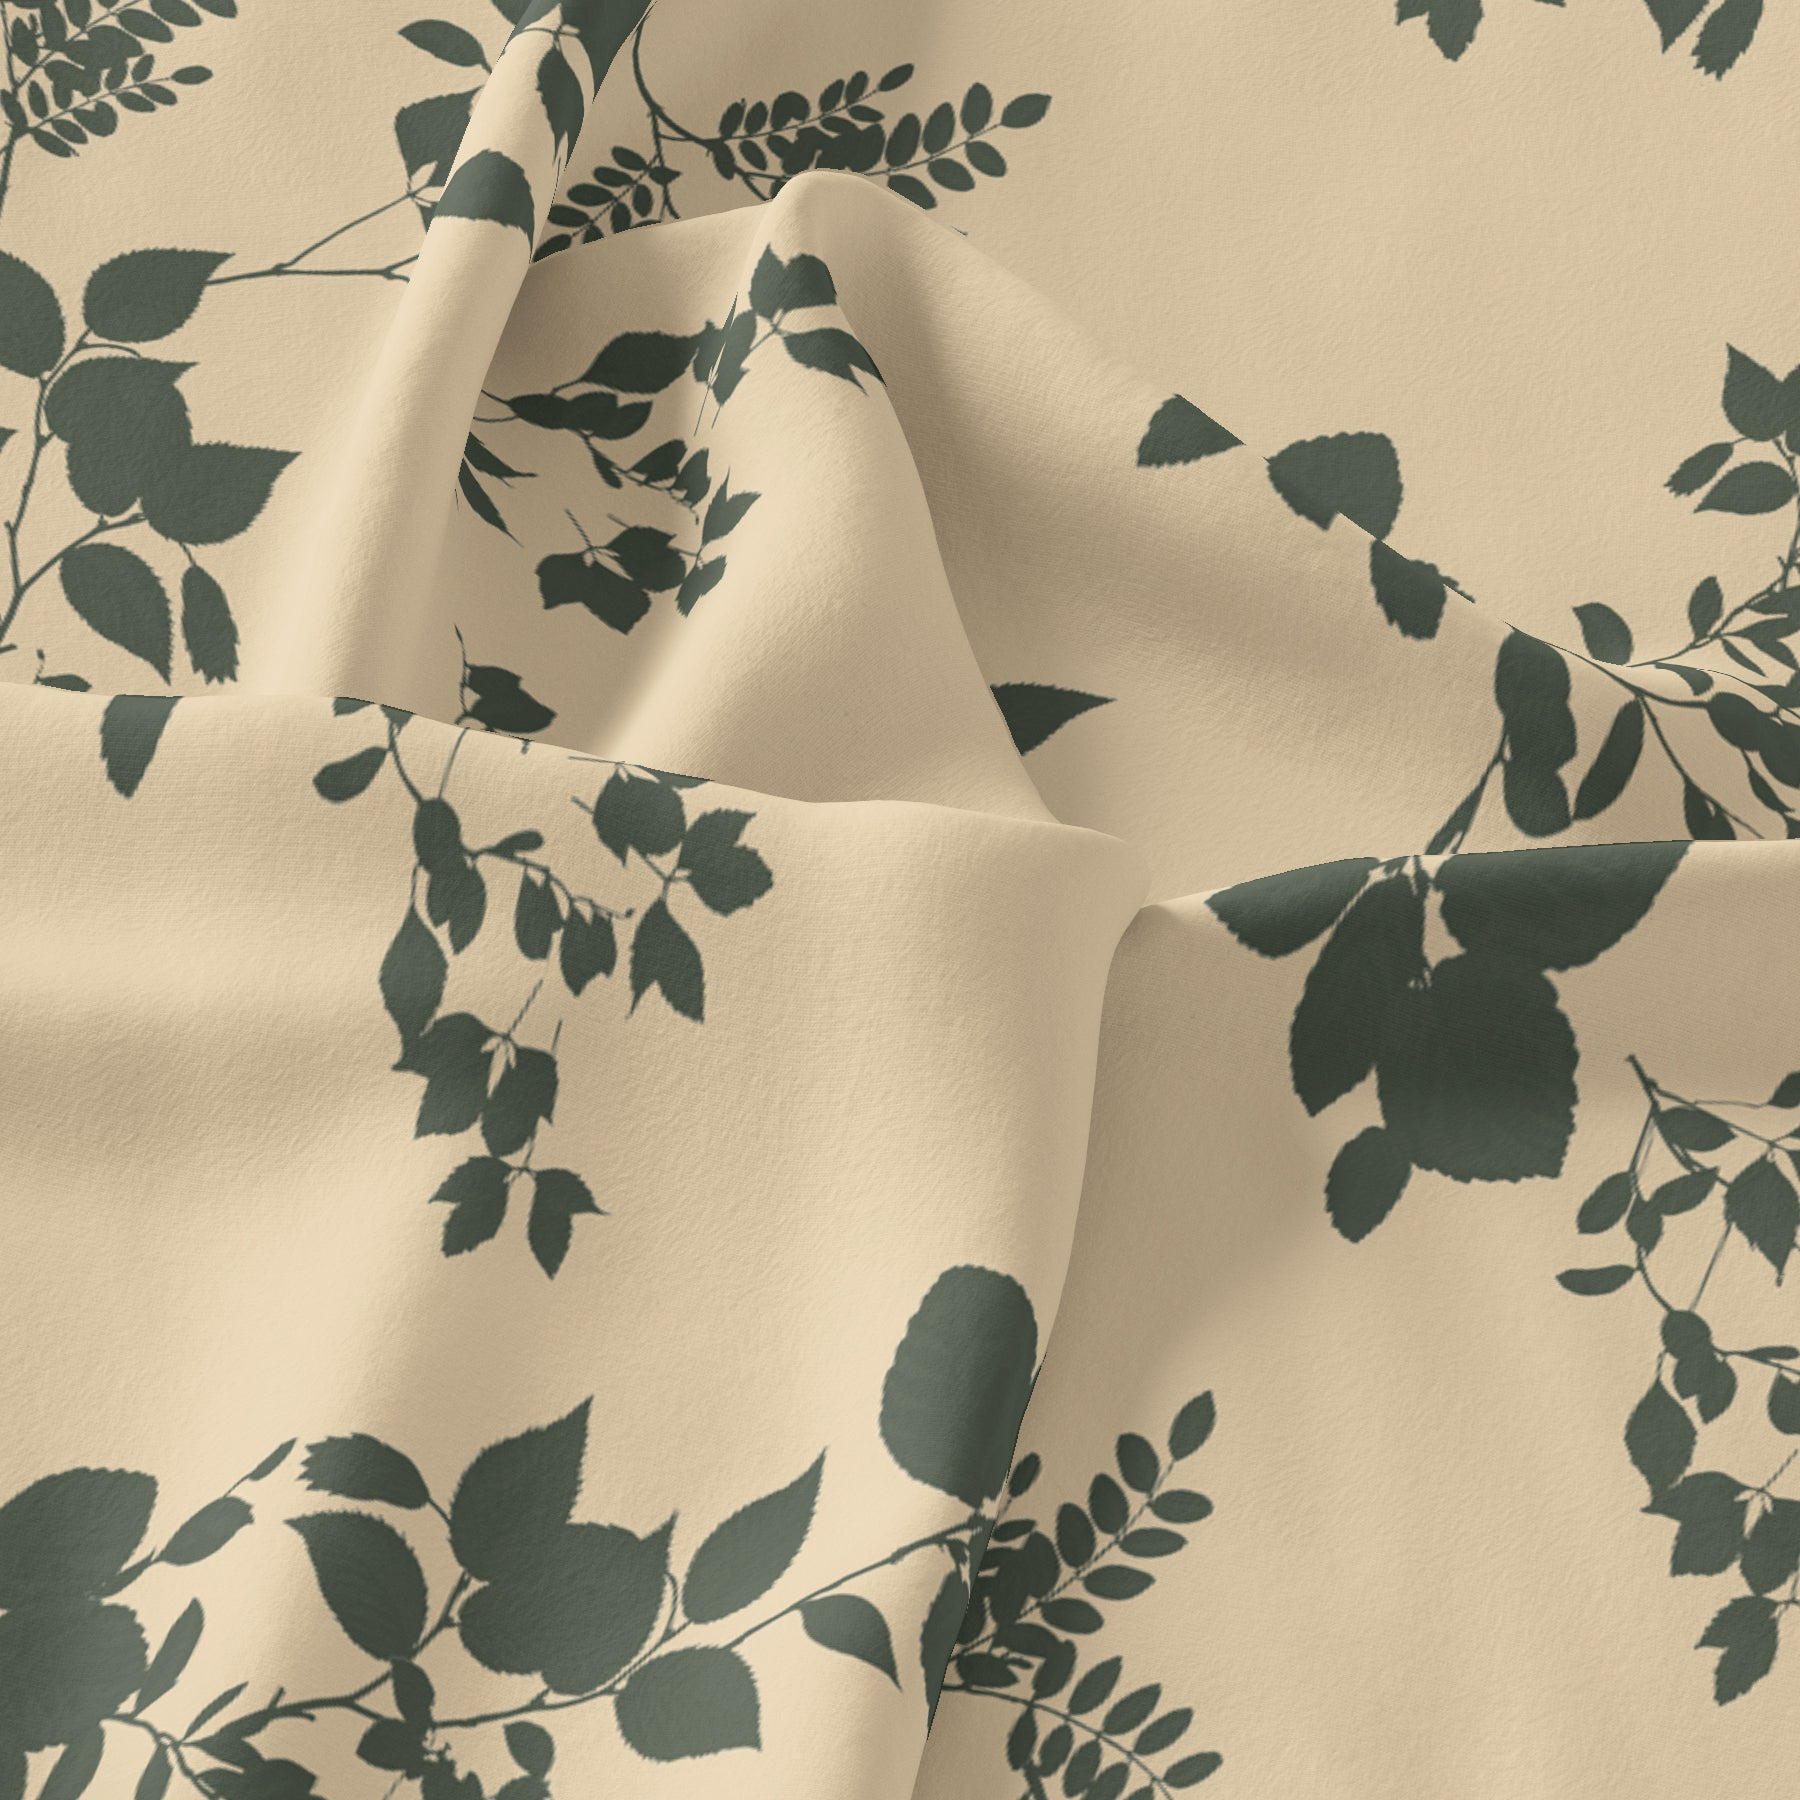 Olive Stalk And Leaves Digital Printed Fabric